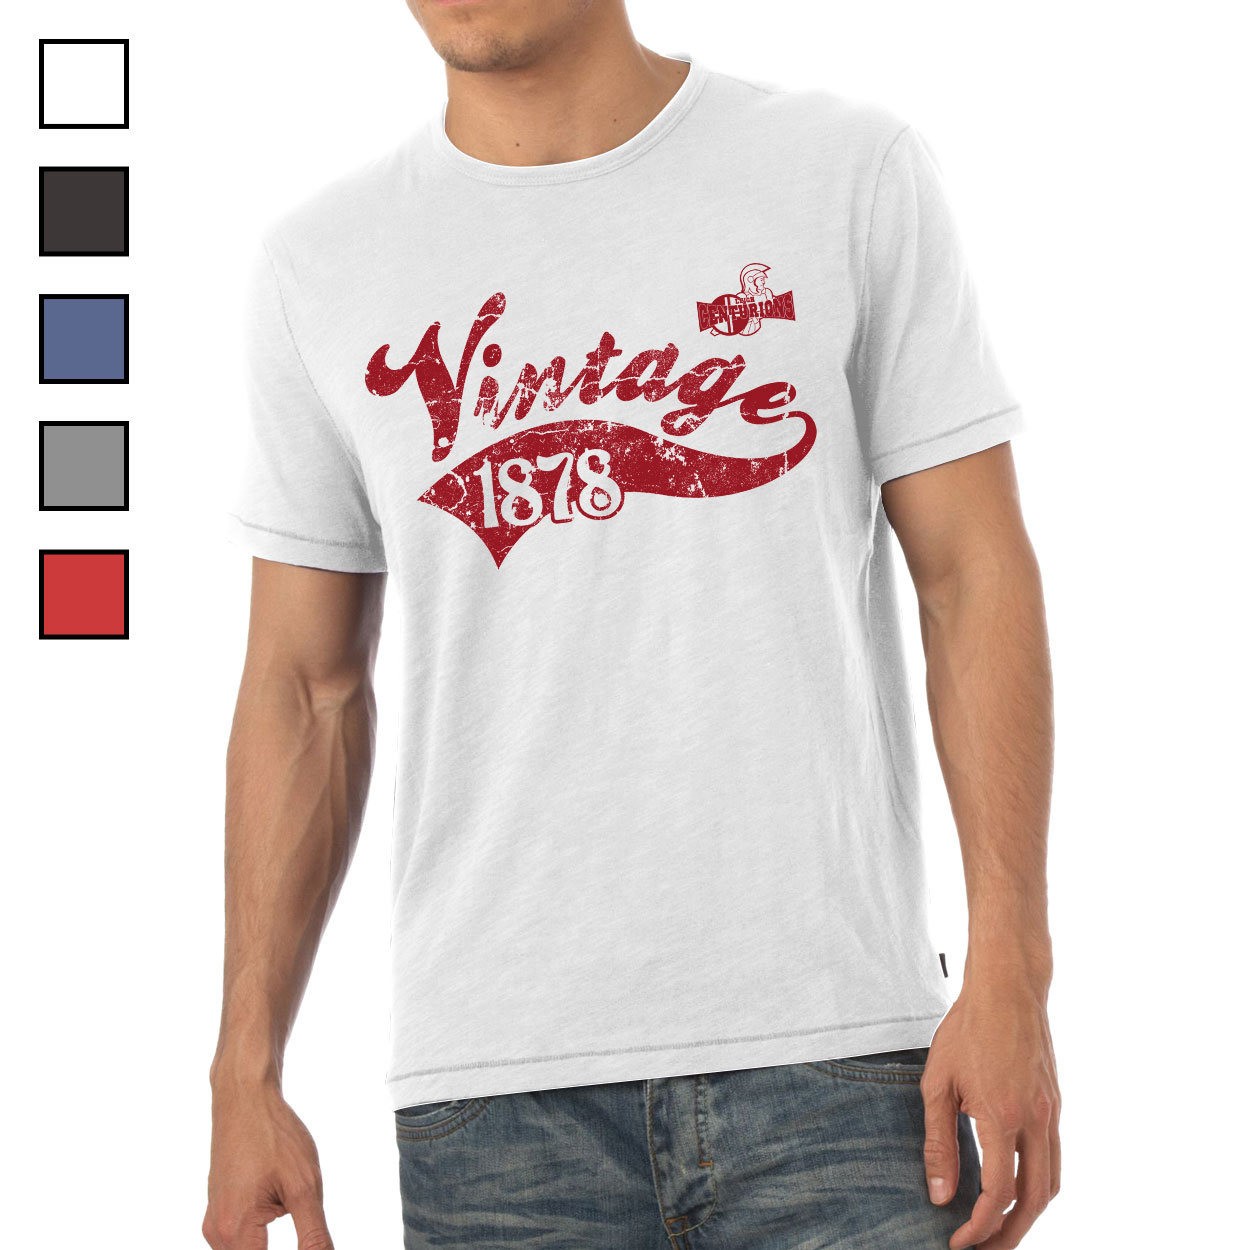 Leigh Centurions Mens Vintage T-Shirt